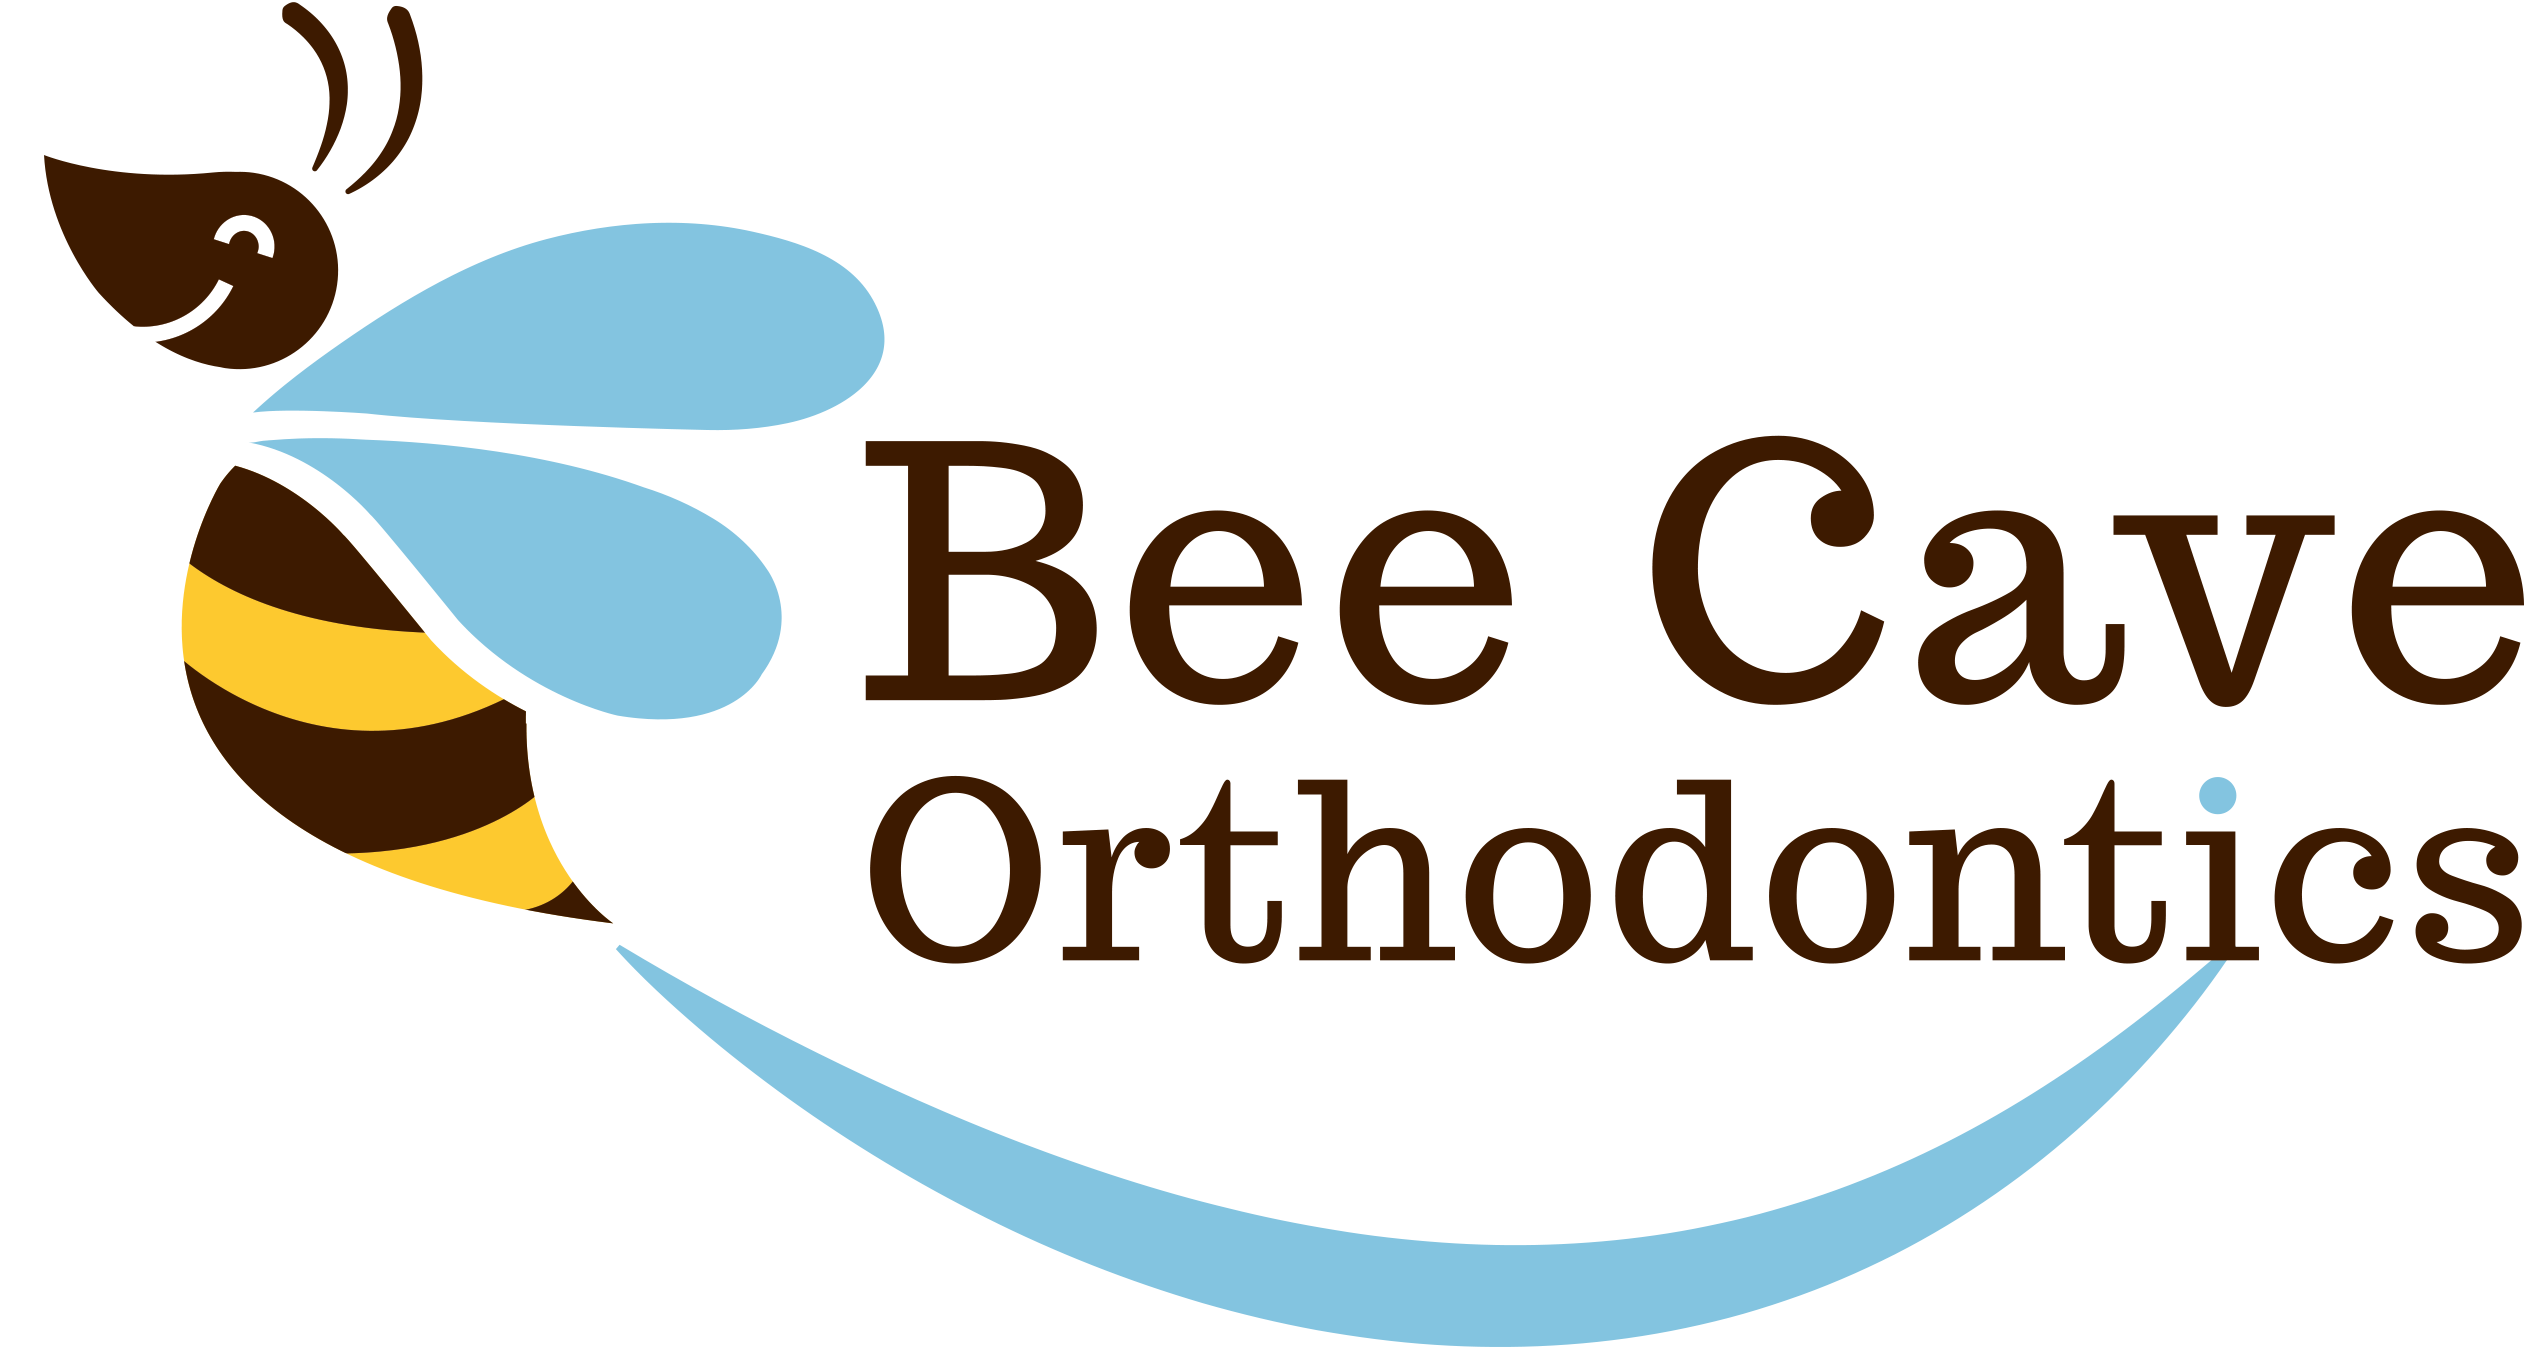 Bee Cave Orthodontics